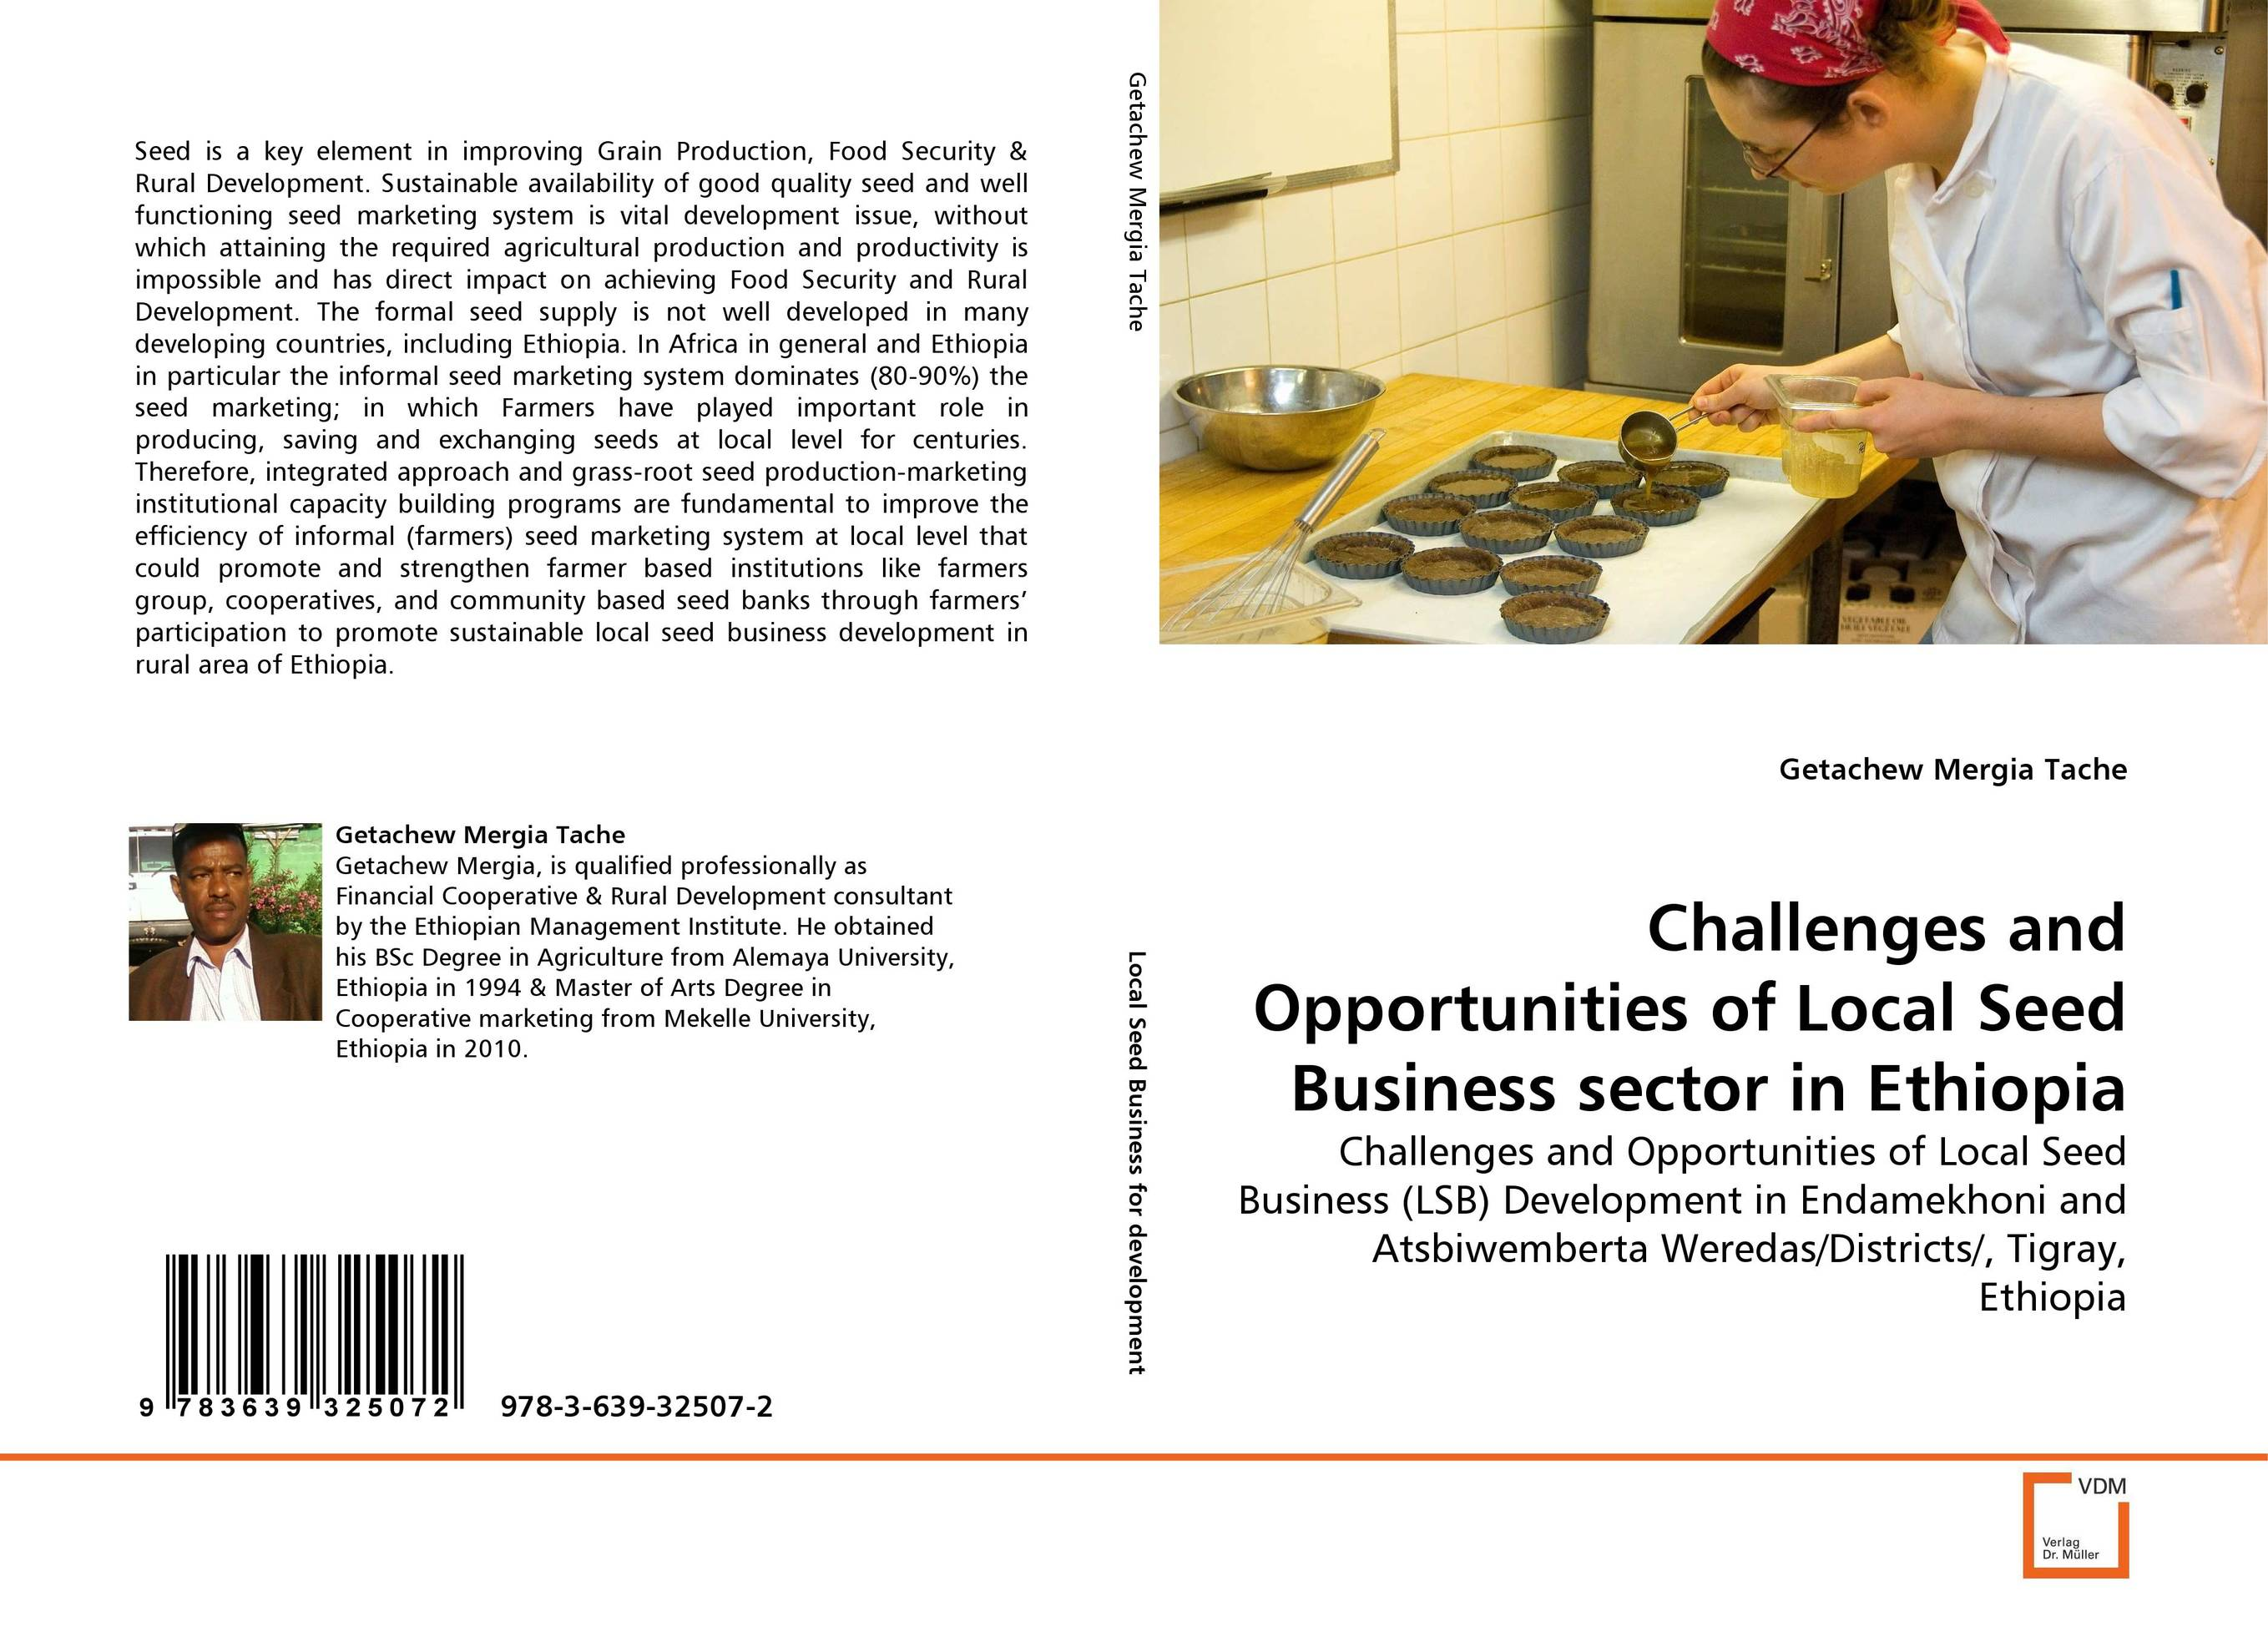 где купить Challenges and Opportunities of Local Seed Business sector in Ethiopia по лучшей цене